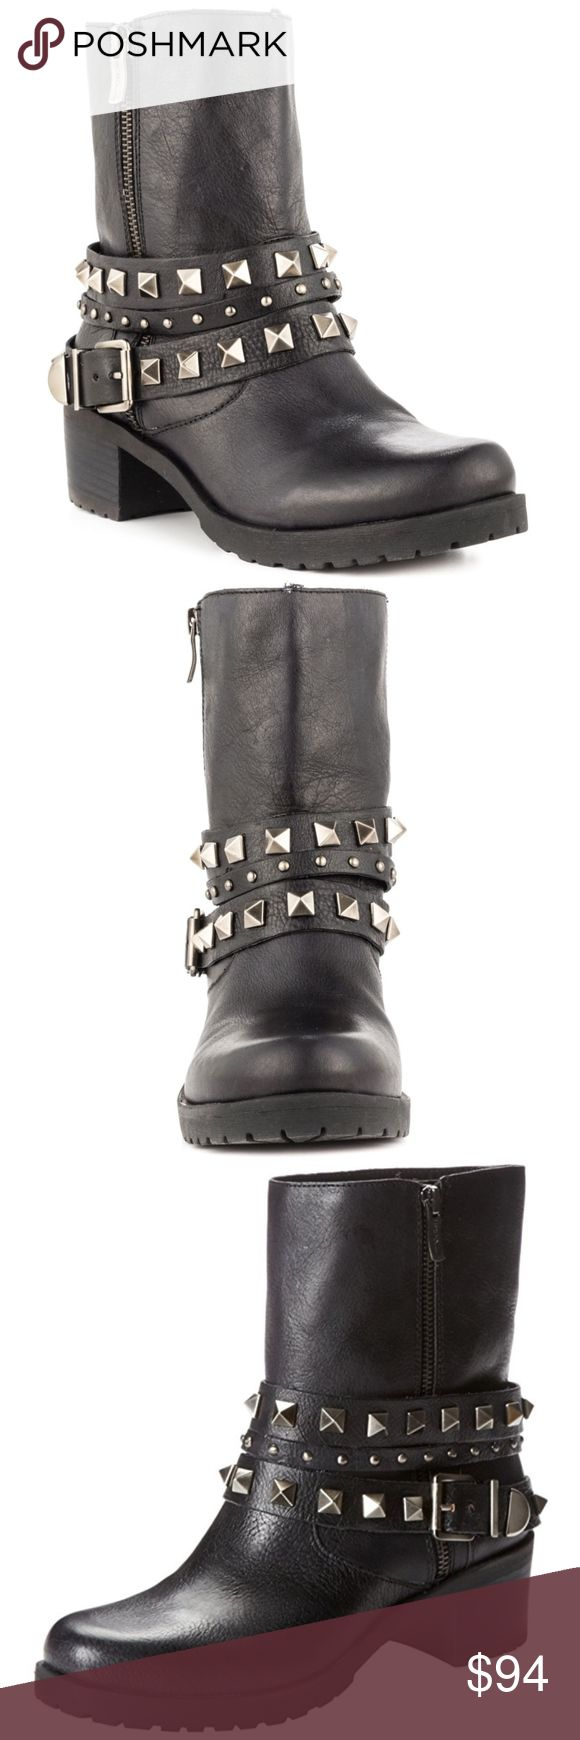 BCBGeneration Women's Estabon Stud Moto Boot NWOT! NEW! NEVER WORN!!! This black leather studded moto boot is perfect for an edgy look. These can easily pair with jeans, leggings, or dresses/skirts. Offers welcome! :) BCBGeneration Shoes Combat & Moto Boots